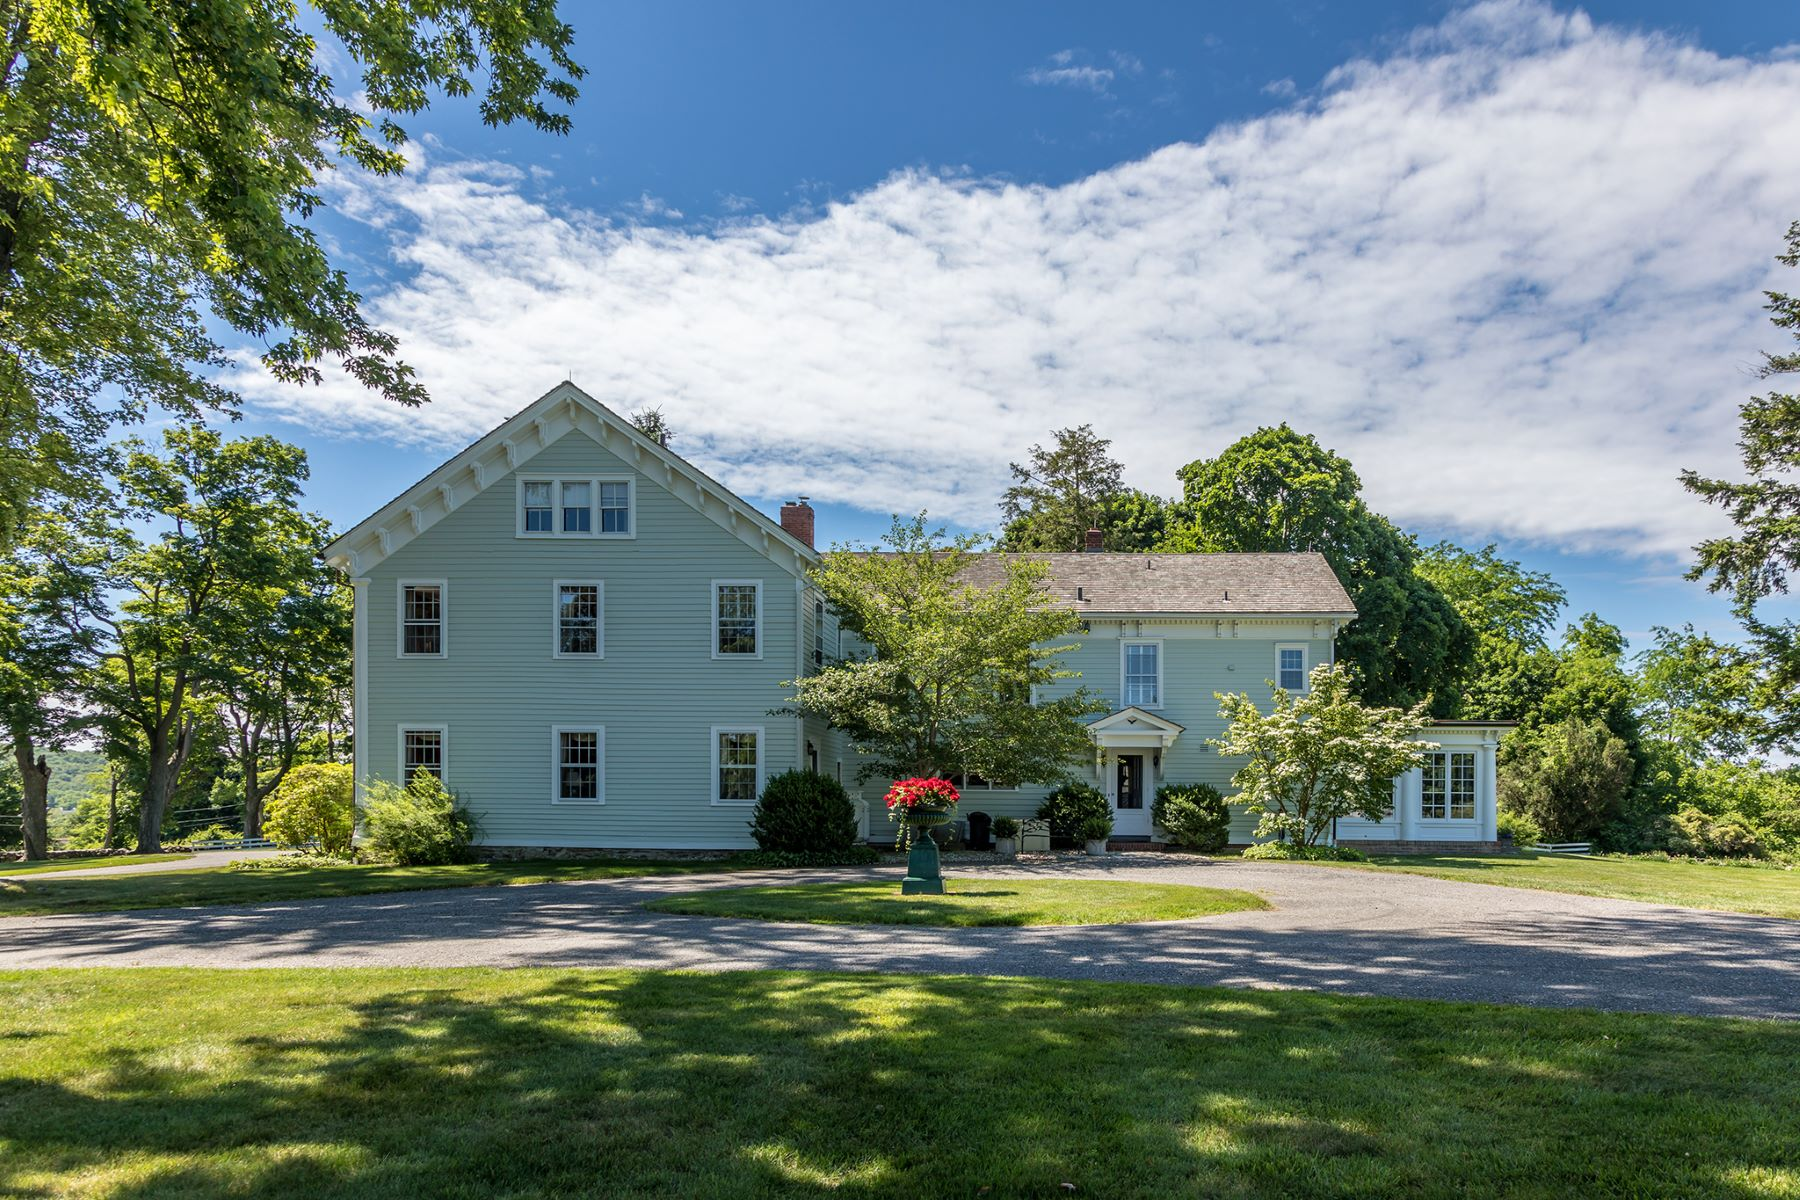 Single Family Homes for Sale at High Meadows Farm 687 Old Quaker Hill Road Pawling, New York 12564 United States